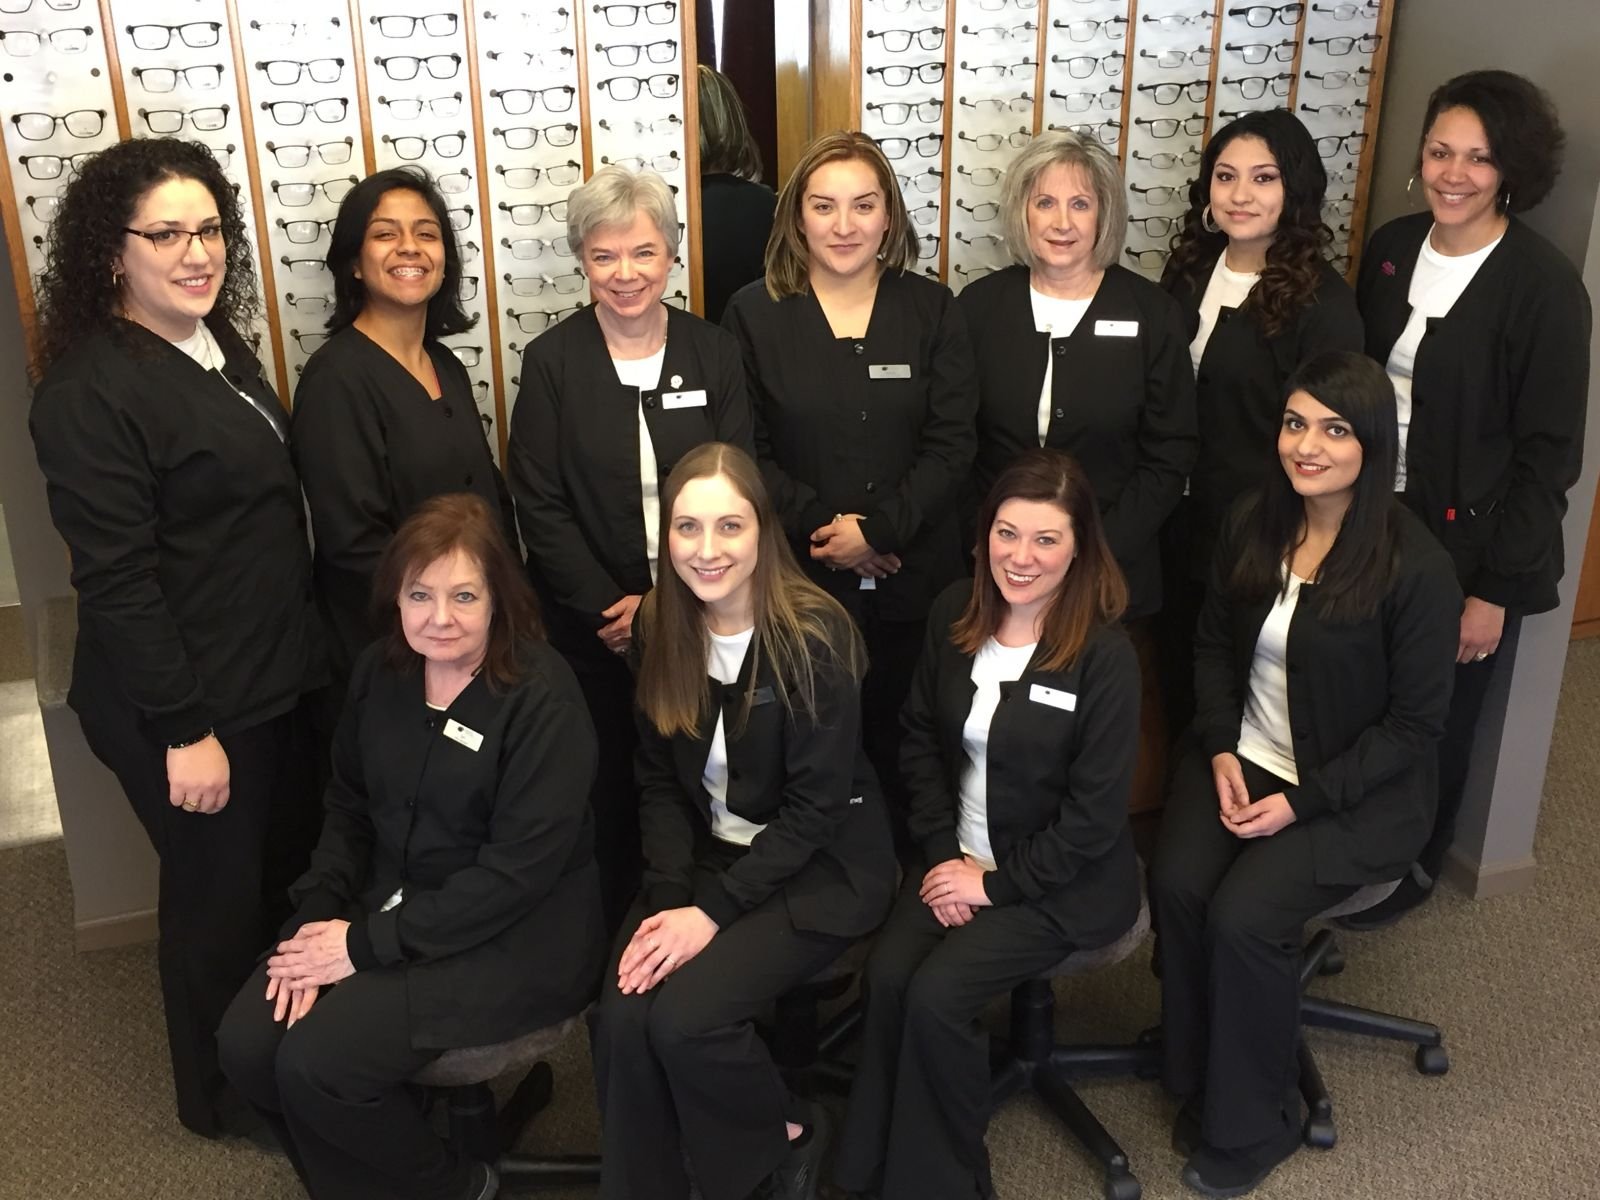 Skowron Eye Care Staff